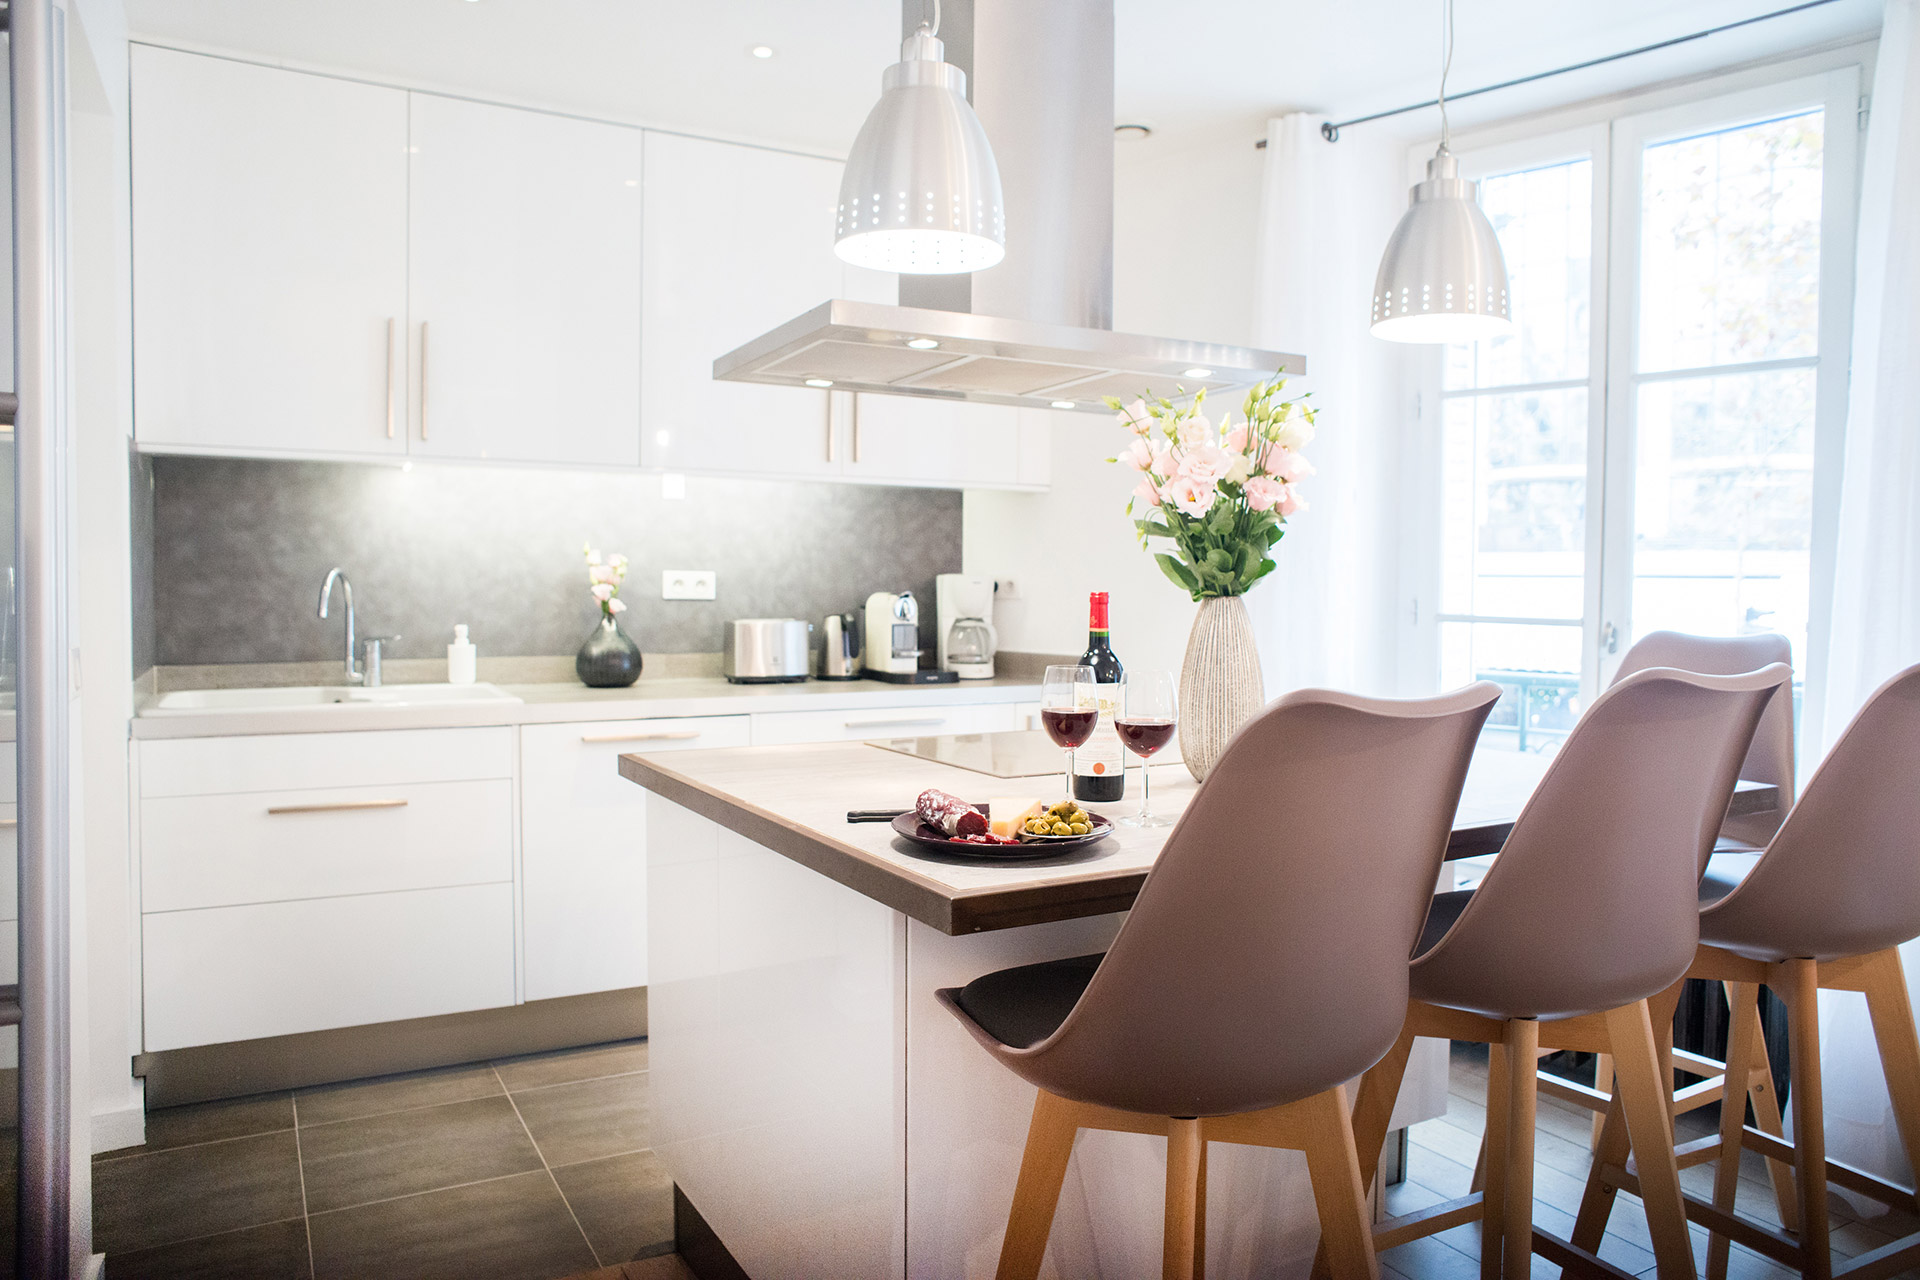 Sunny kitchen of the Monplaisir vacation rental by Paris Perfect